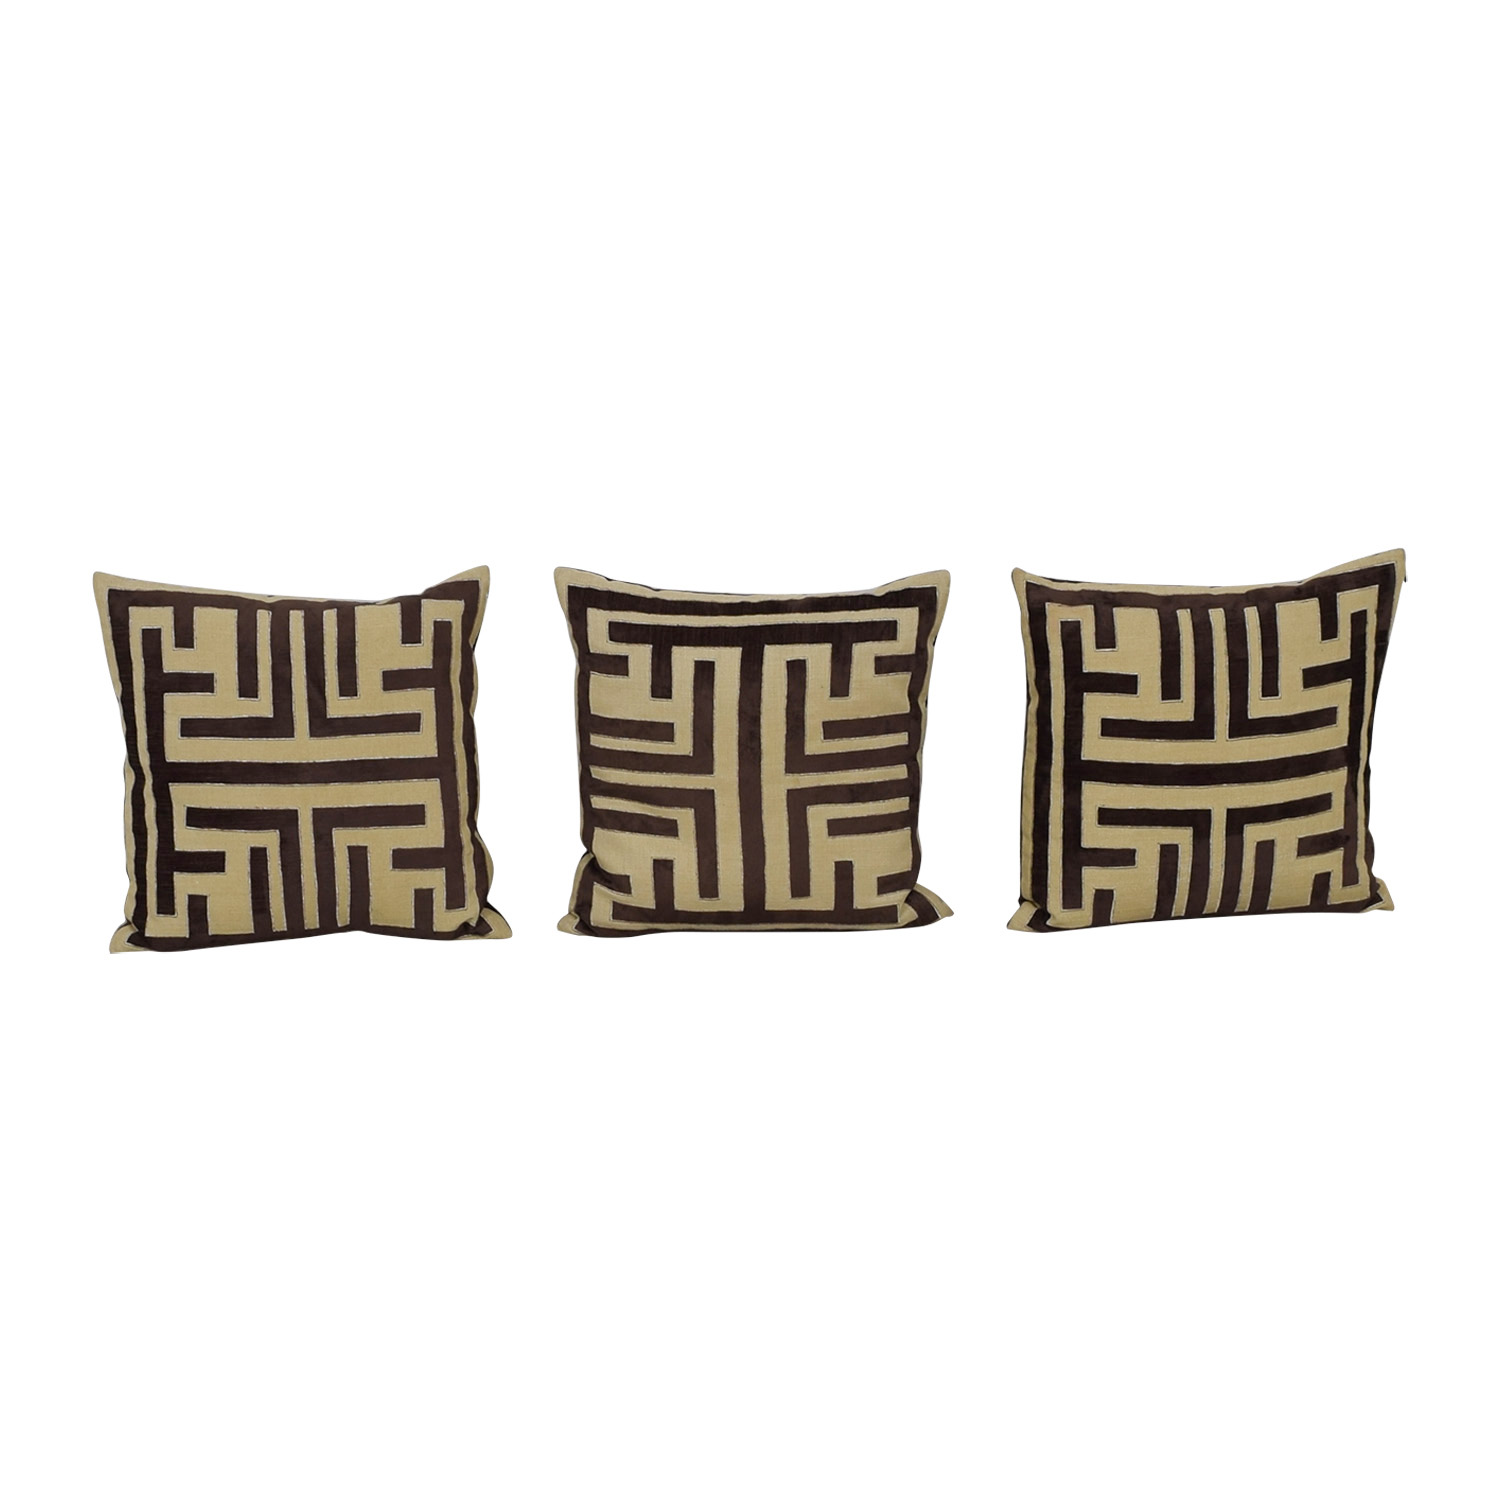 Z Gallerie Z Gallerie Labyrinth Brown and Beige Pillows dimensions